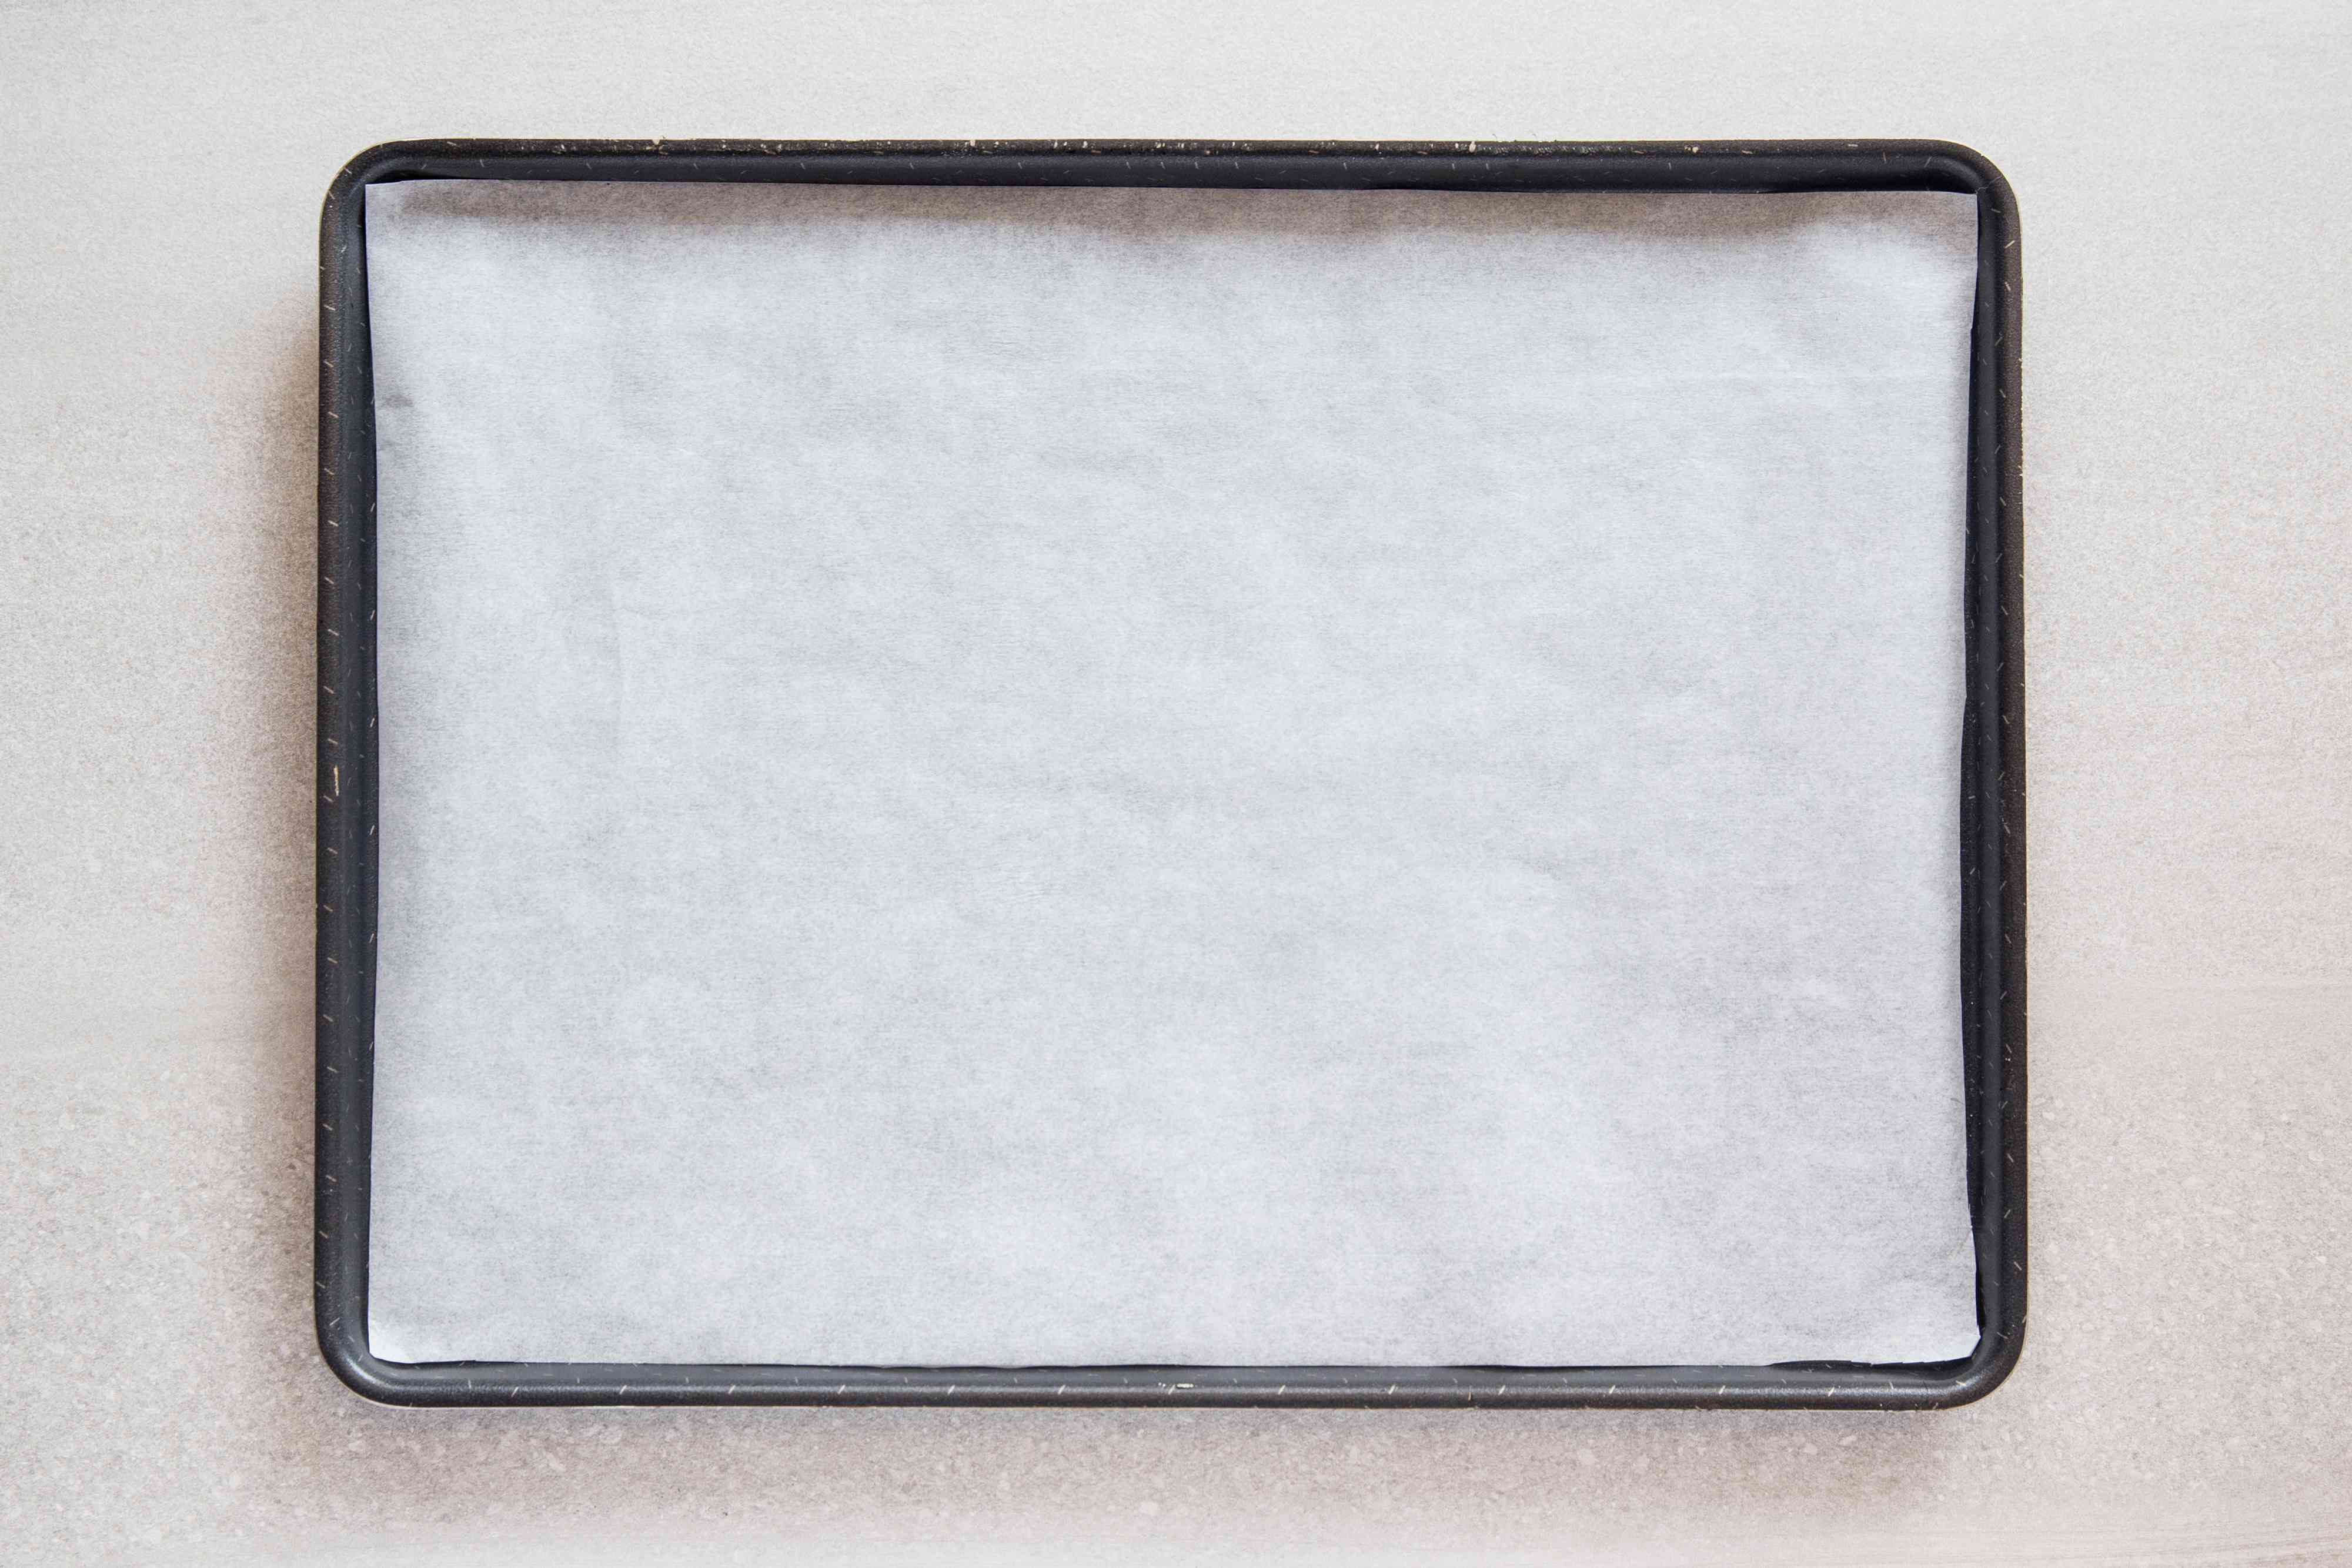 Baking sheet lined with parchment paper